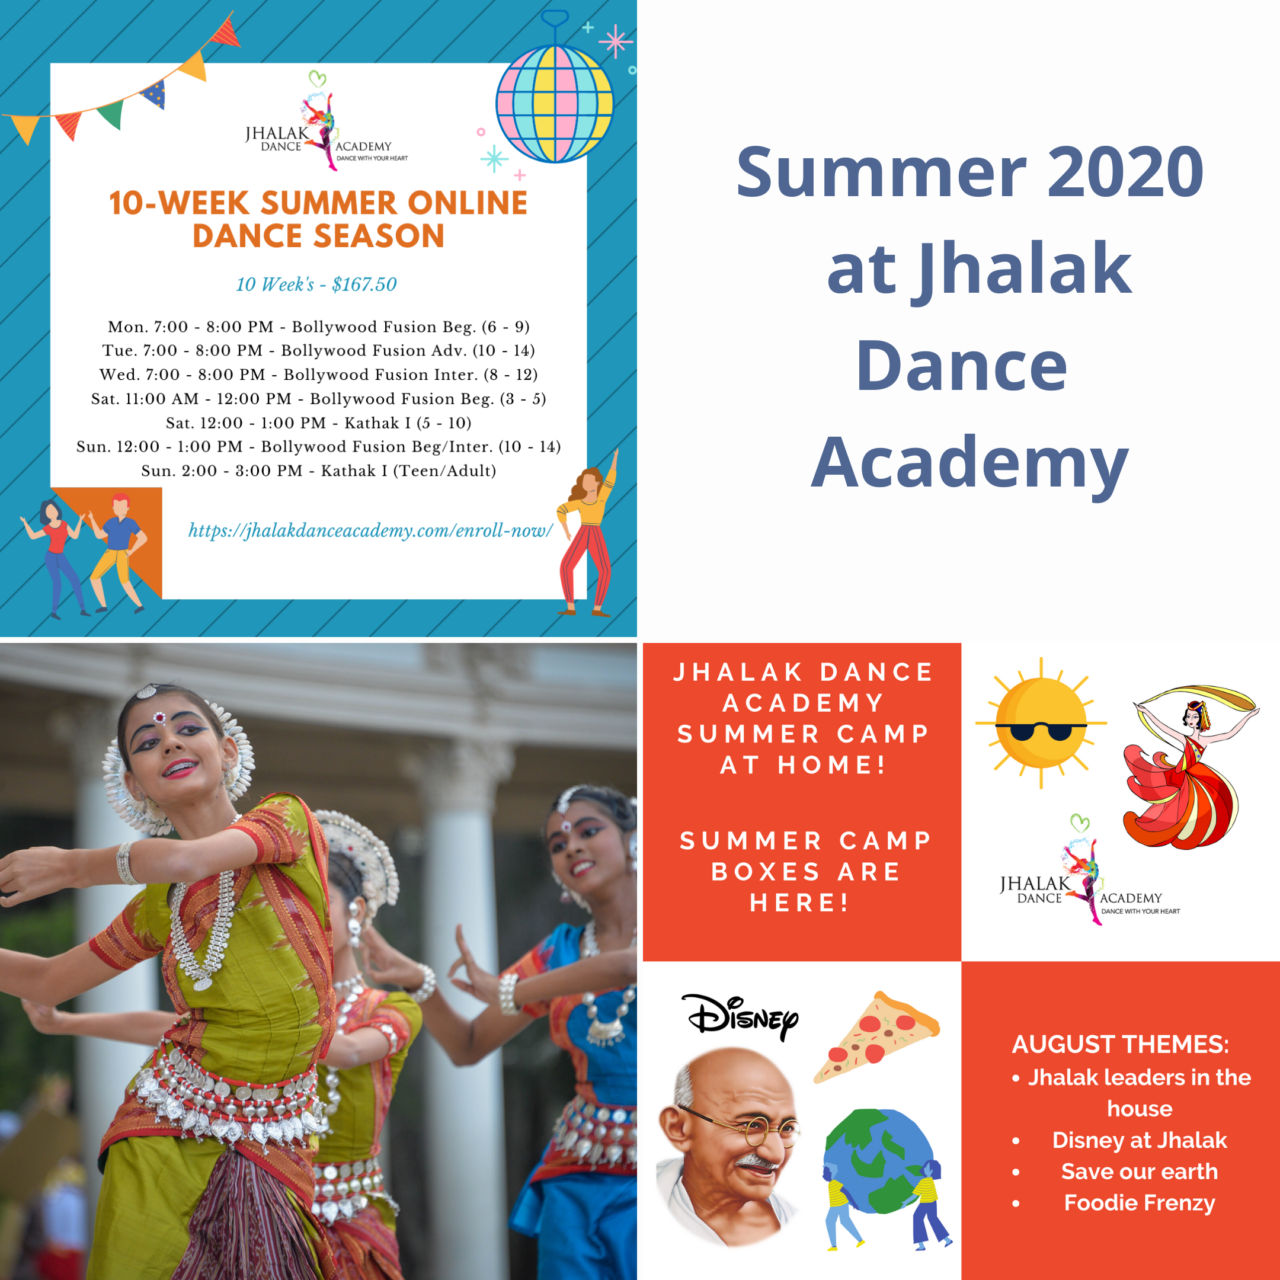 https://jhalakdanceacademy.com/wp-content/uploads/2020/07/SUmmer_2020_at_Jhalak_Dance_Academy-1280x1280.png